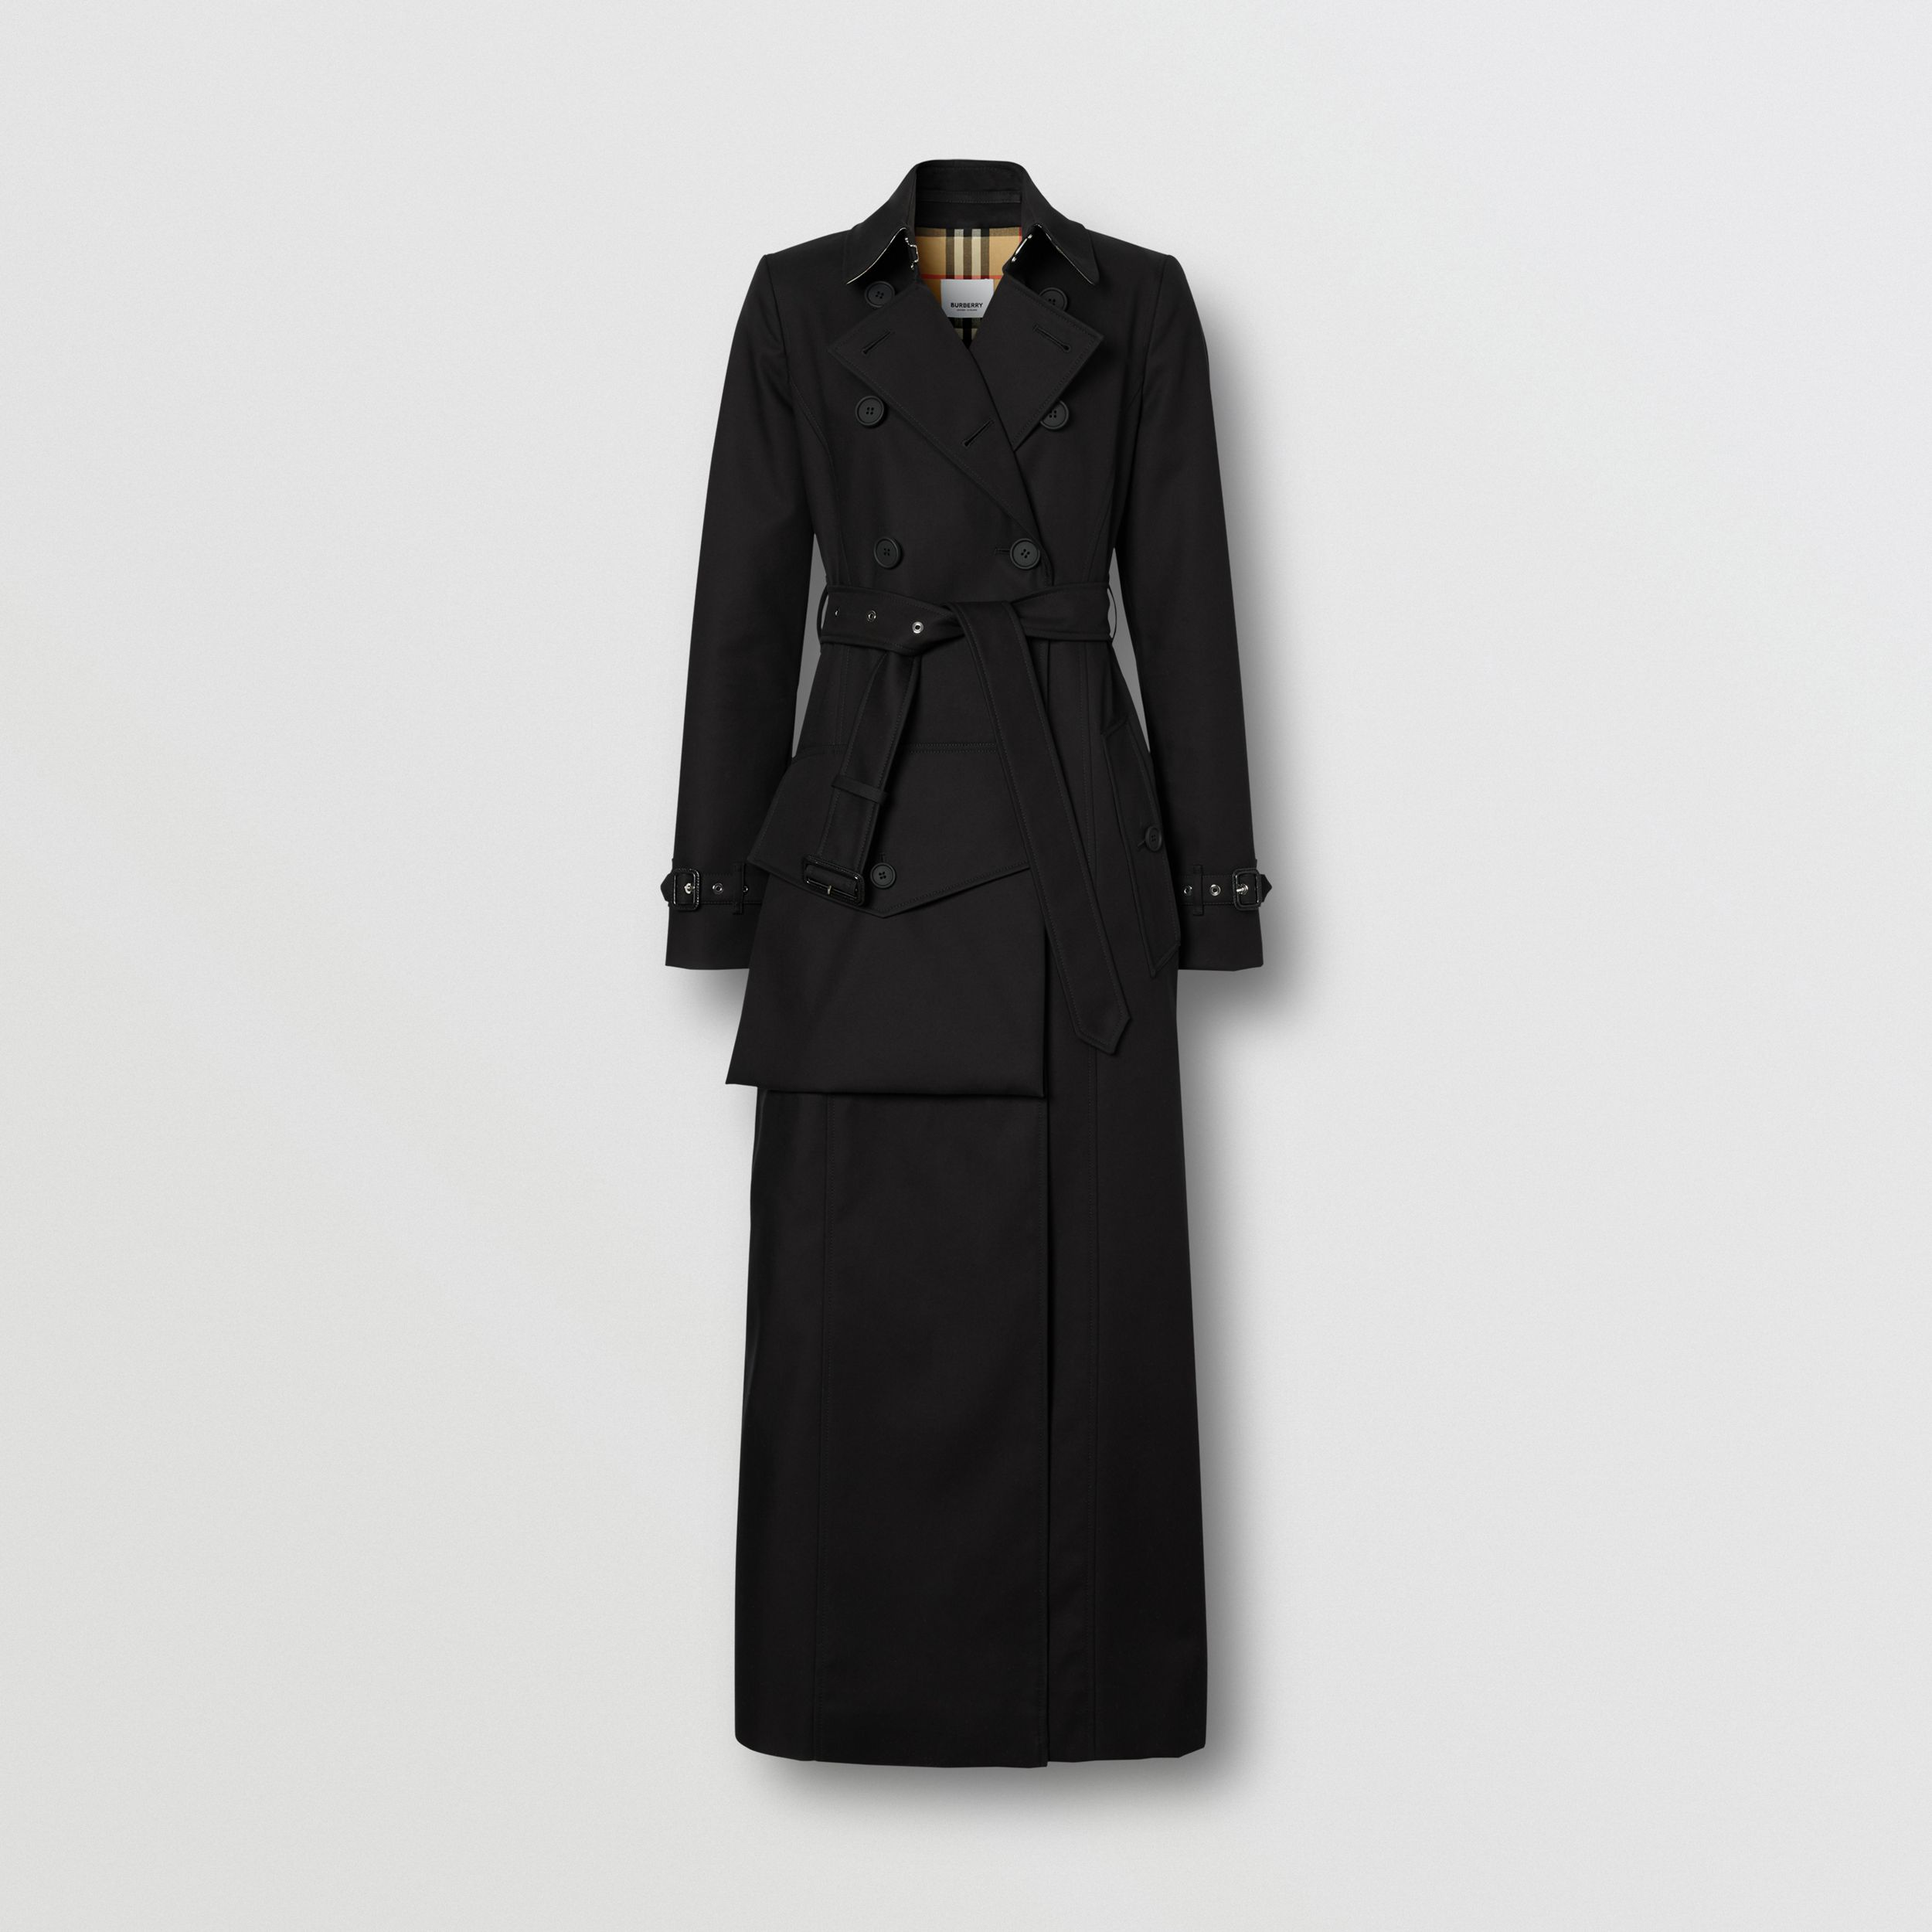 Pocket Detail Cotton Gabardine Trench Coat in Black - Women | Burberry - 4